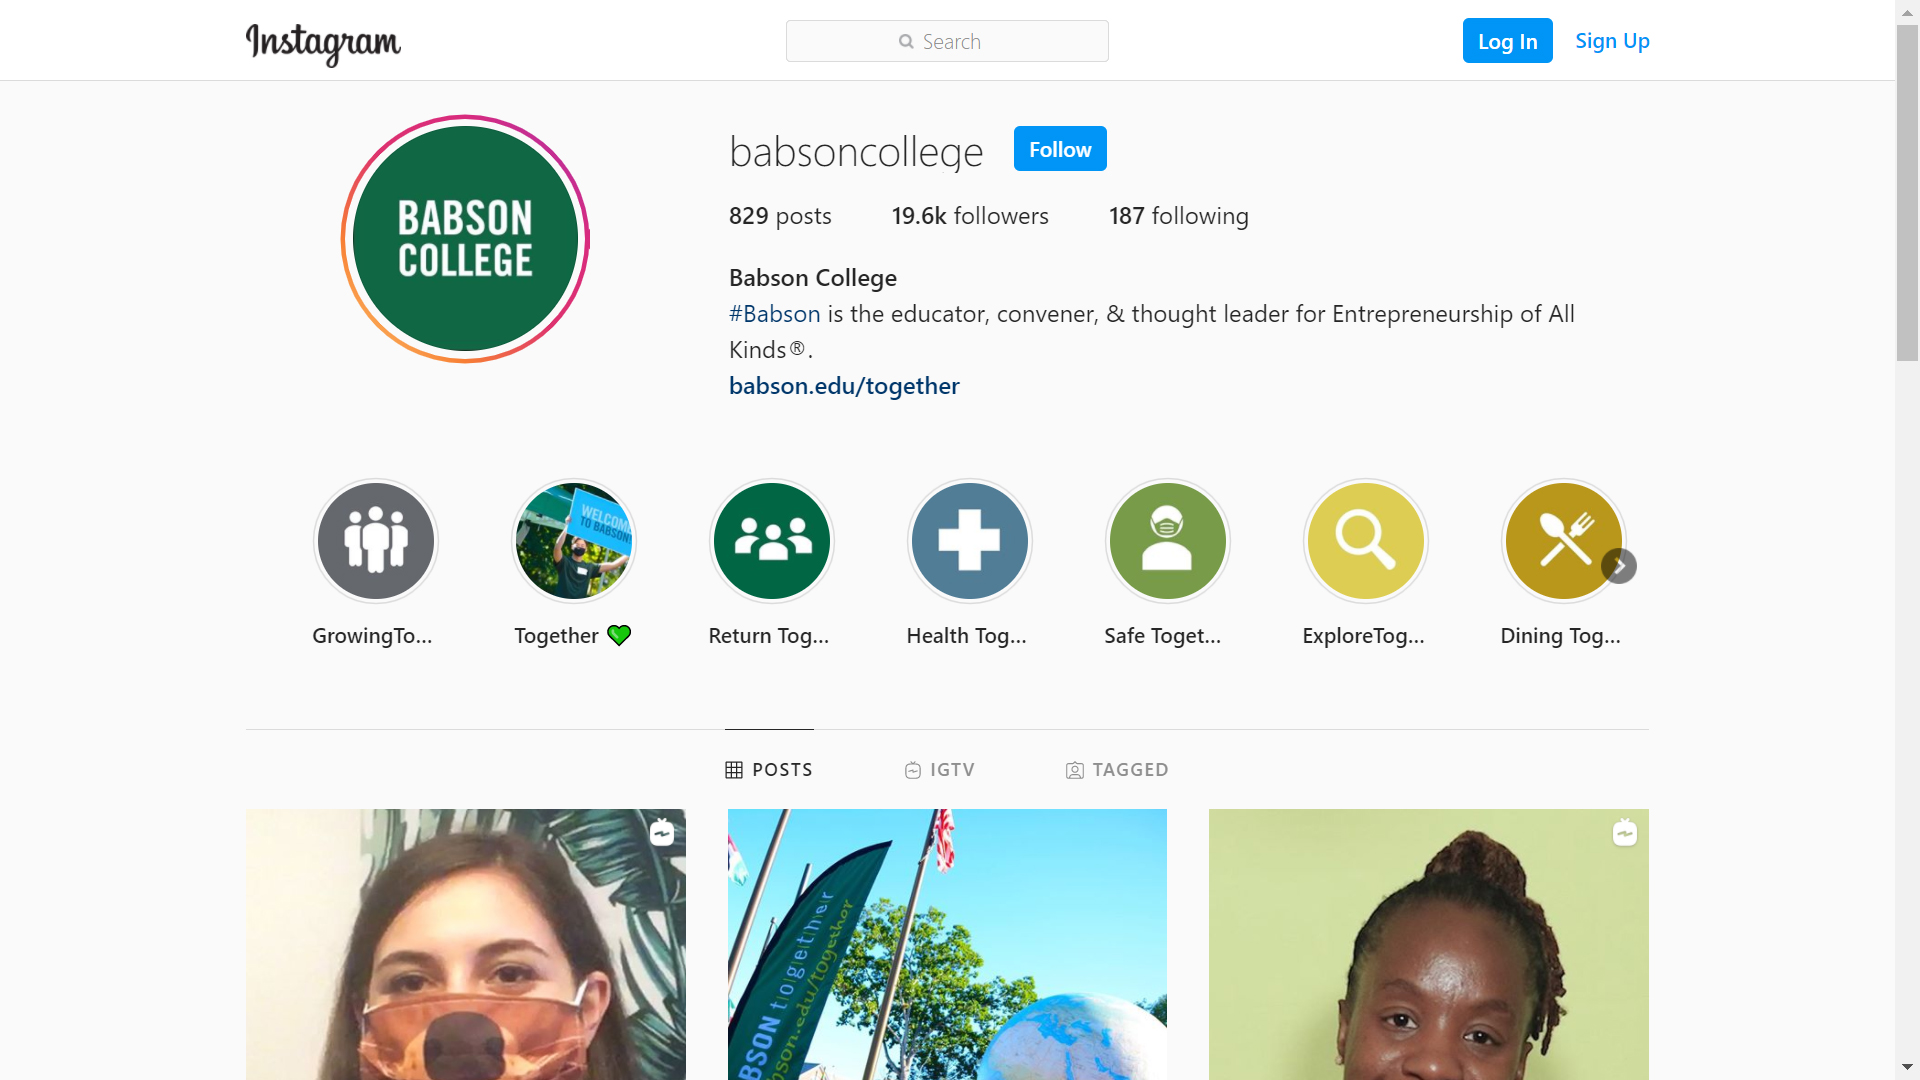 Babson College on Instagram